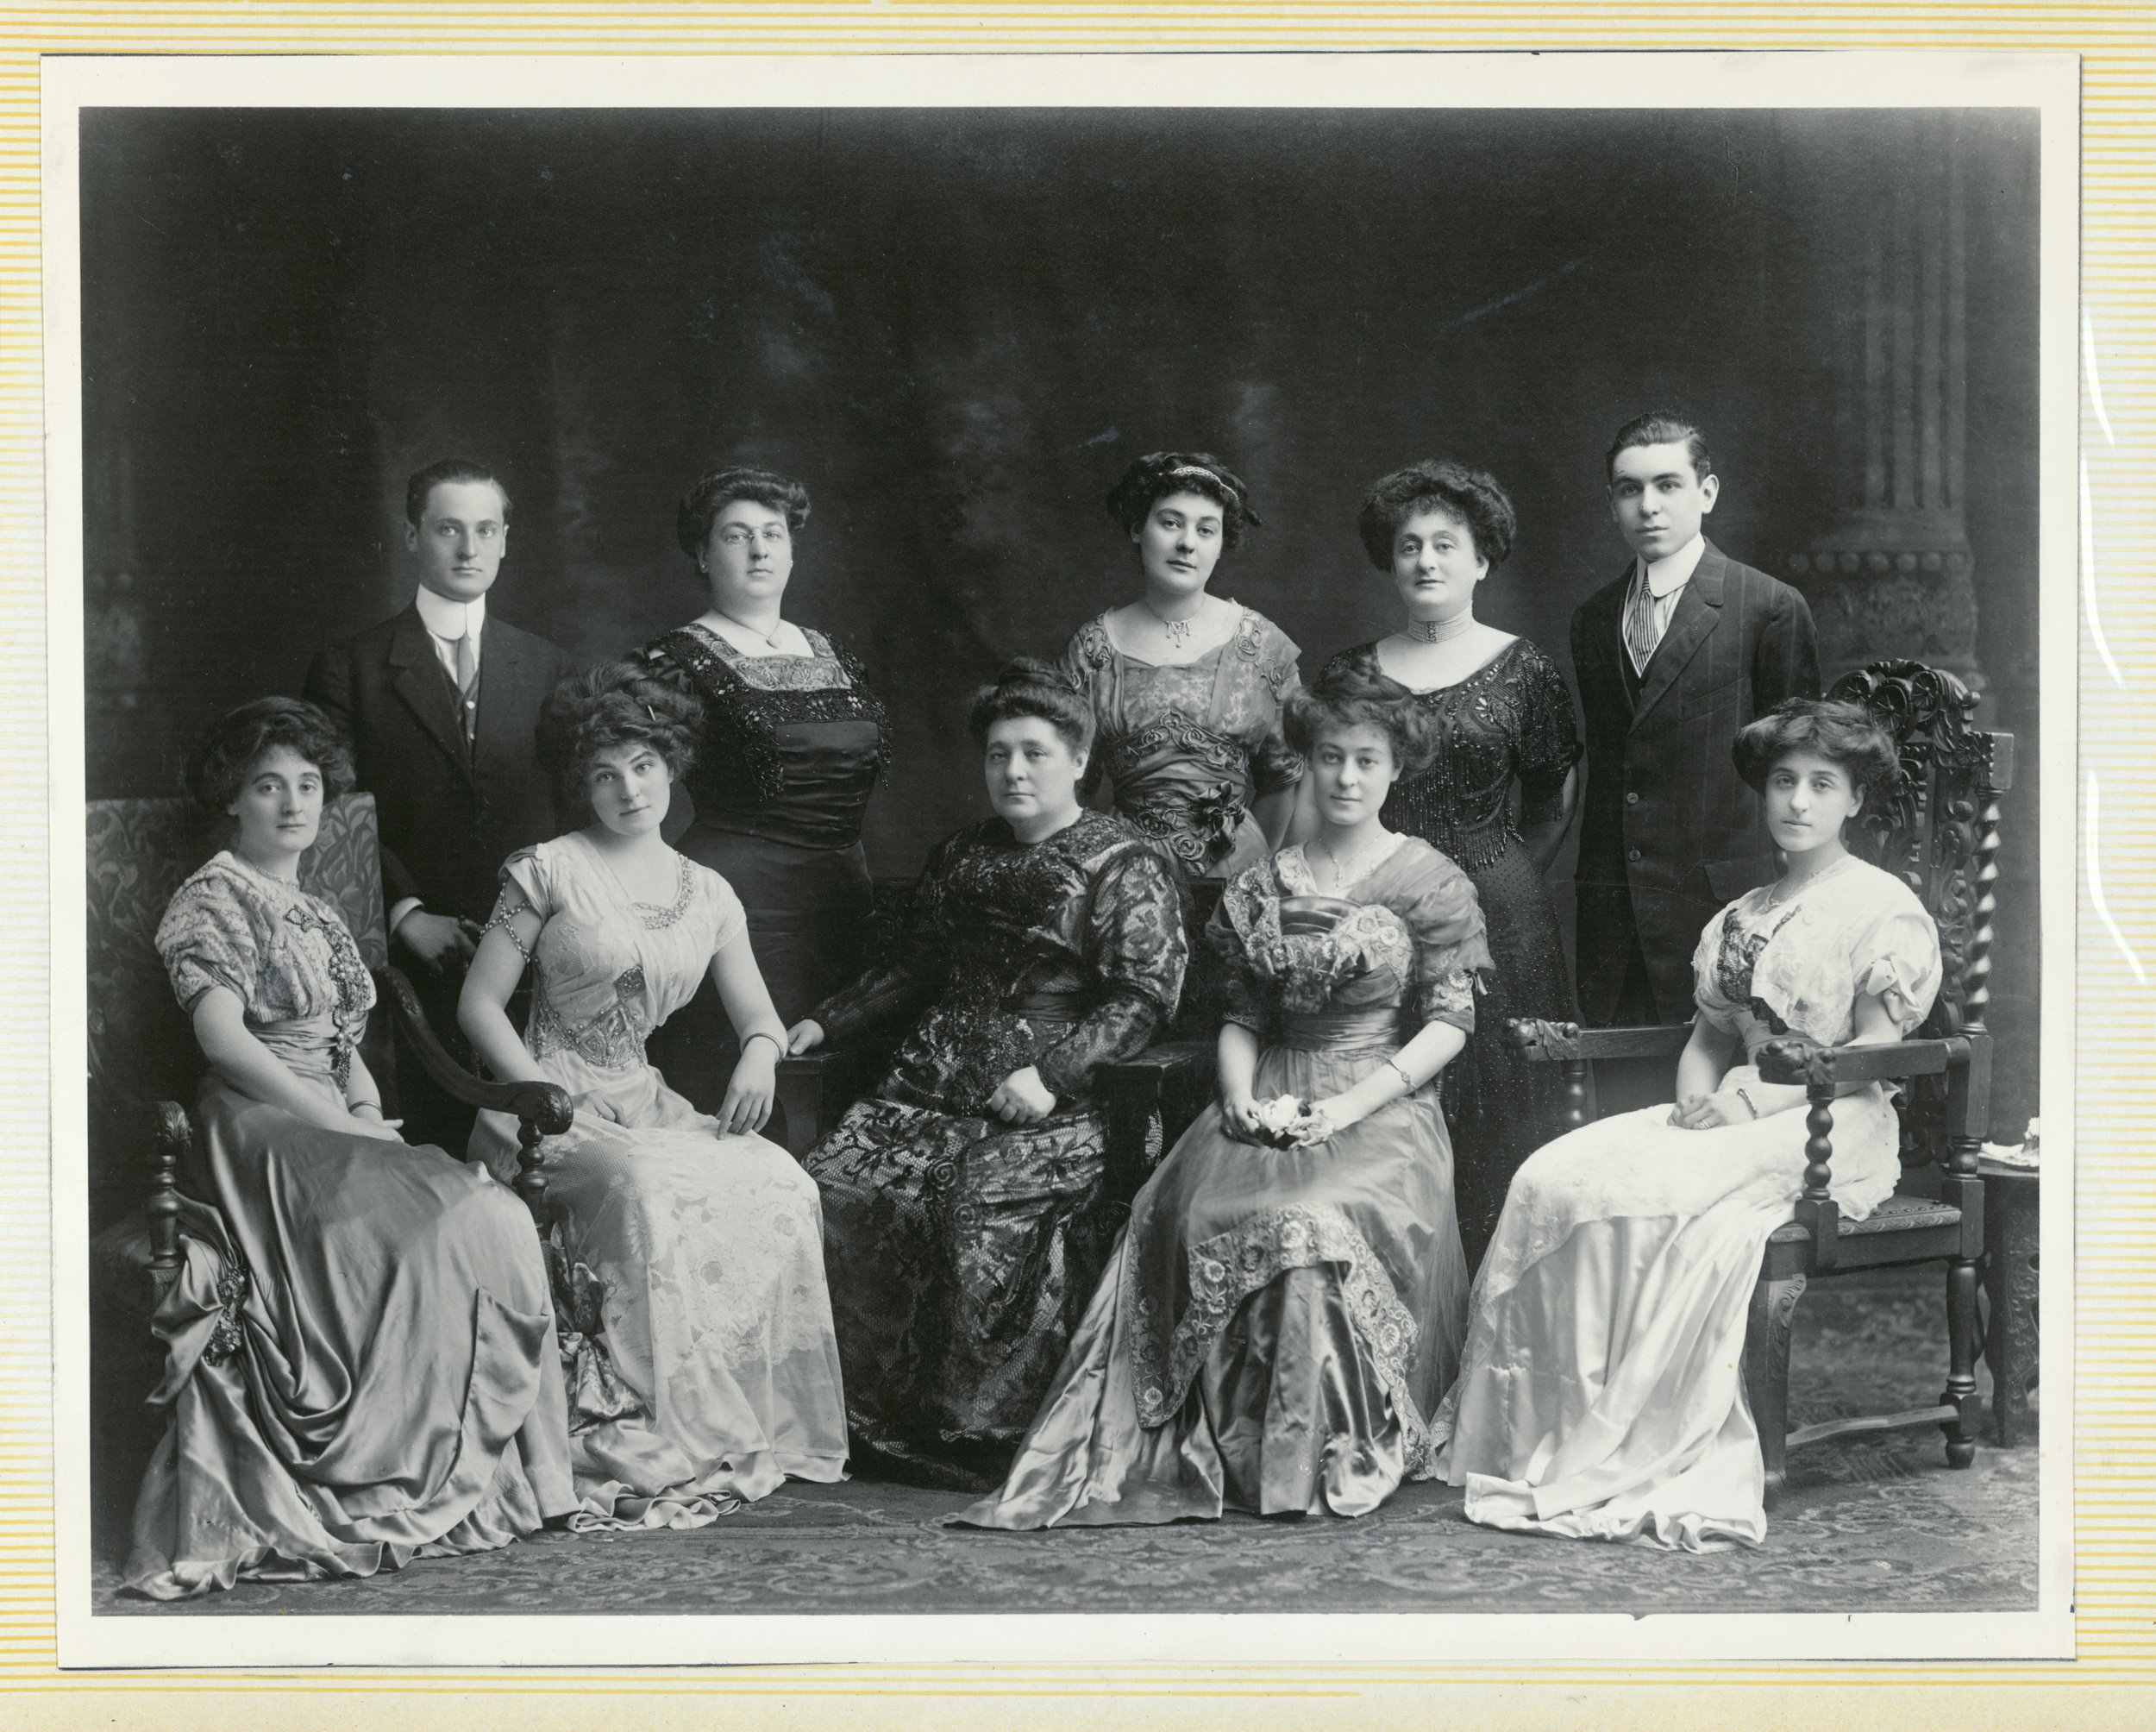 Sadly I have no photograph of Harris Samilson. Hiis wife, Eva Rebecca Simon Samilson is surrounded by their children Jane, Minnie, Massie, Sarah, Anna, Flora, Belle (Bud), Jesse and Mortimer.